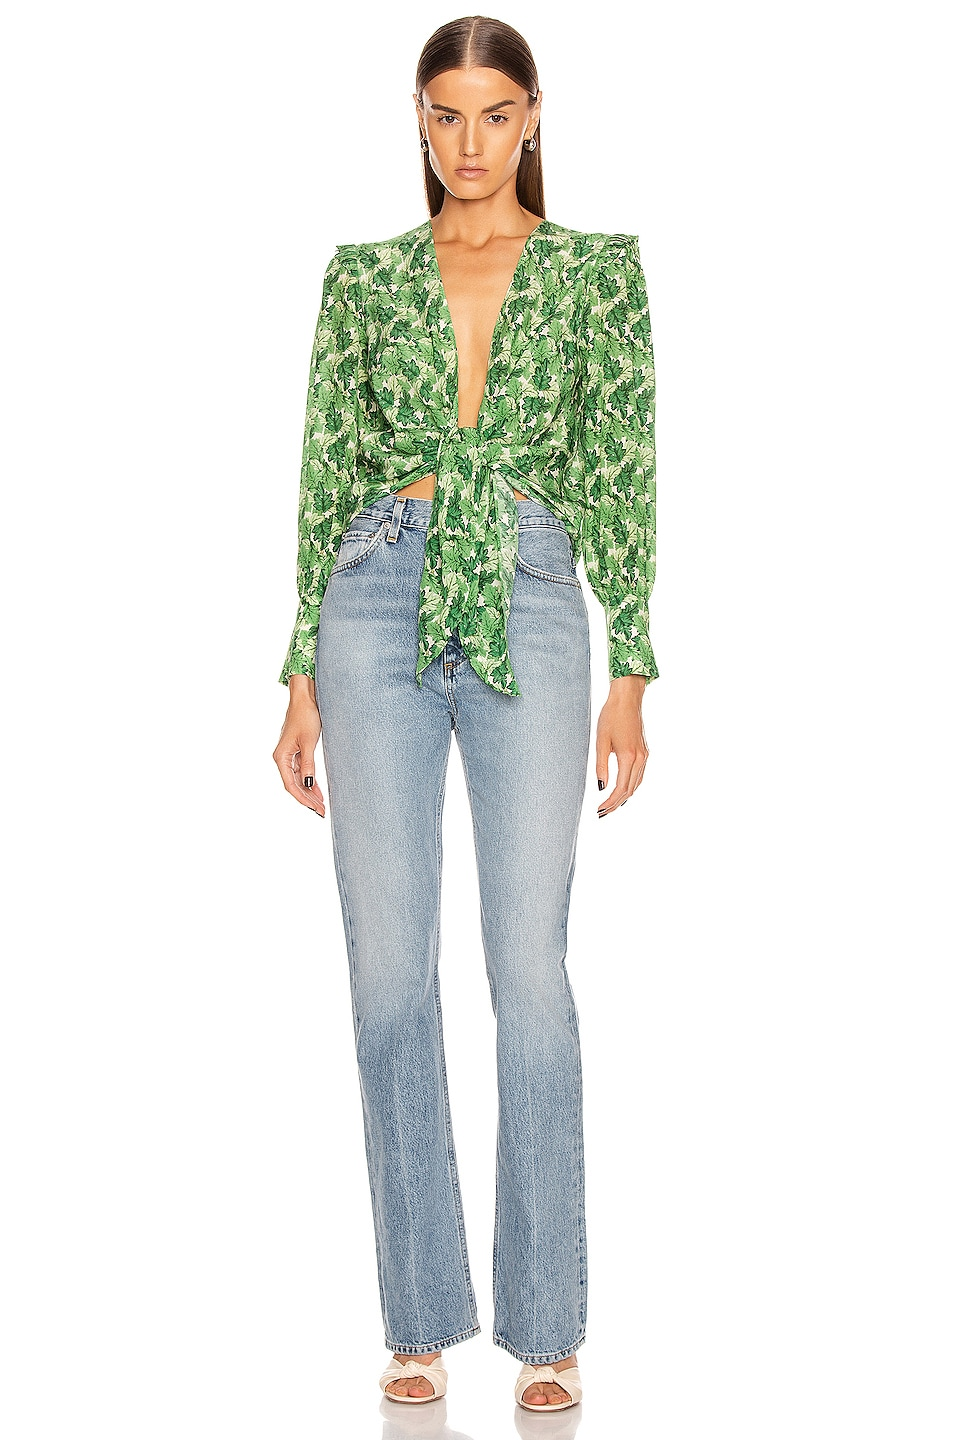 Image 4 of ADRIANA DEGREAS Dahlia Shirt With Voluminous Sleeves in Green